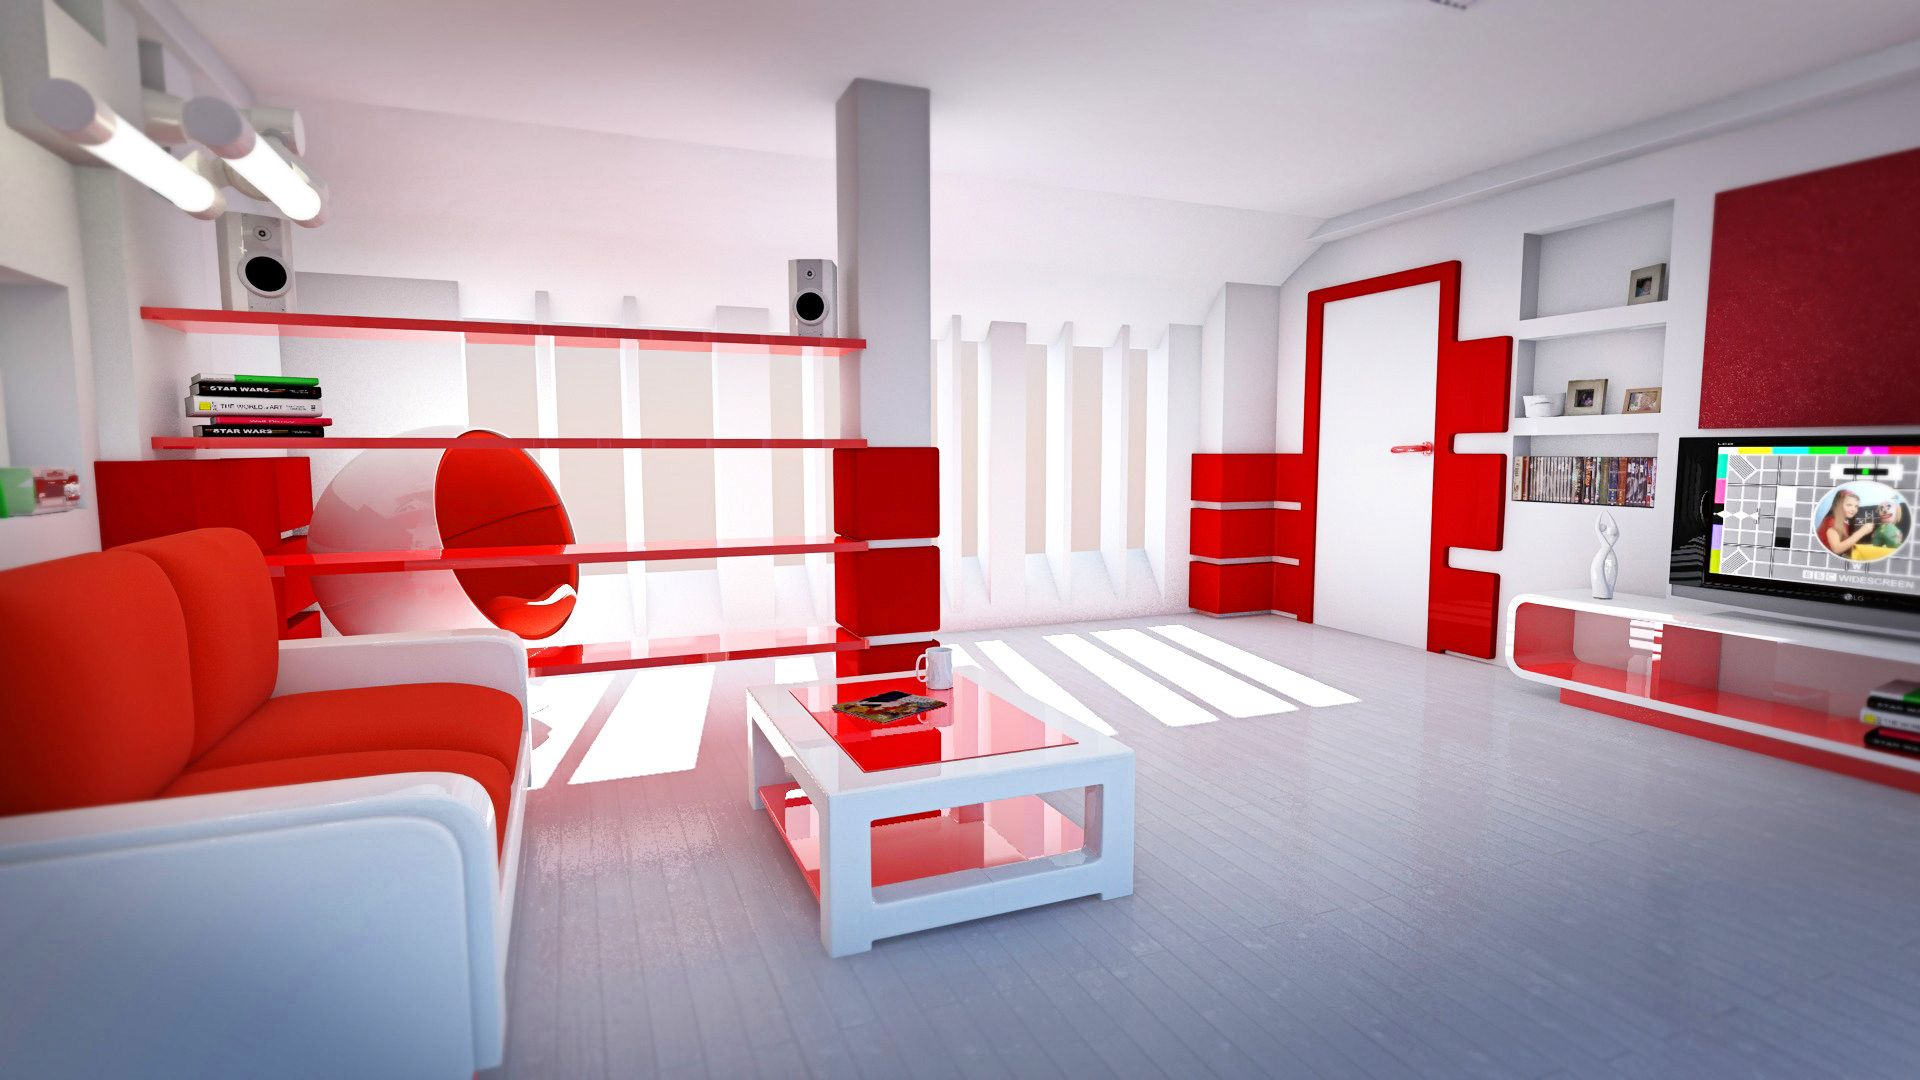 Red bedroom designs ideas - Luxurious Decorating Ideas Interior Design Help Apartment With The About Interior Design Creation Of Attractive Colors Red And White Color Furniture To